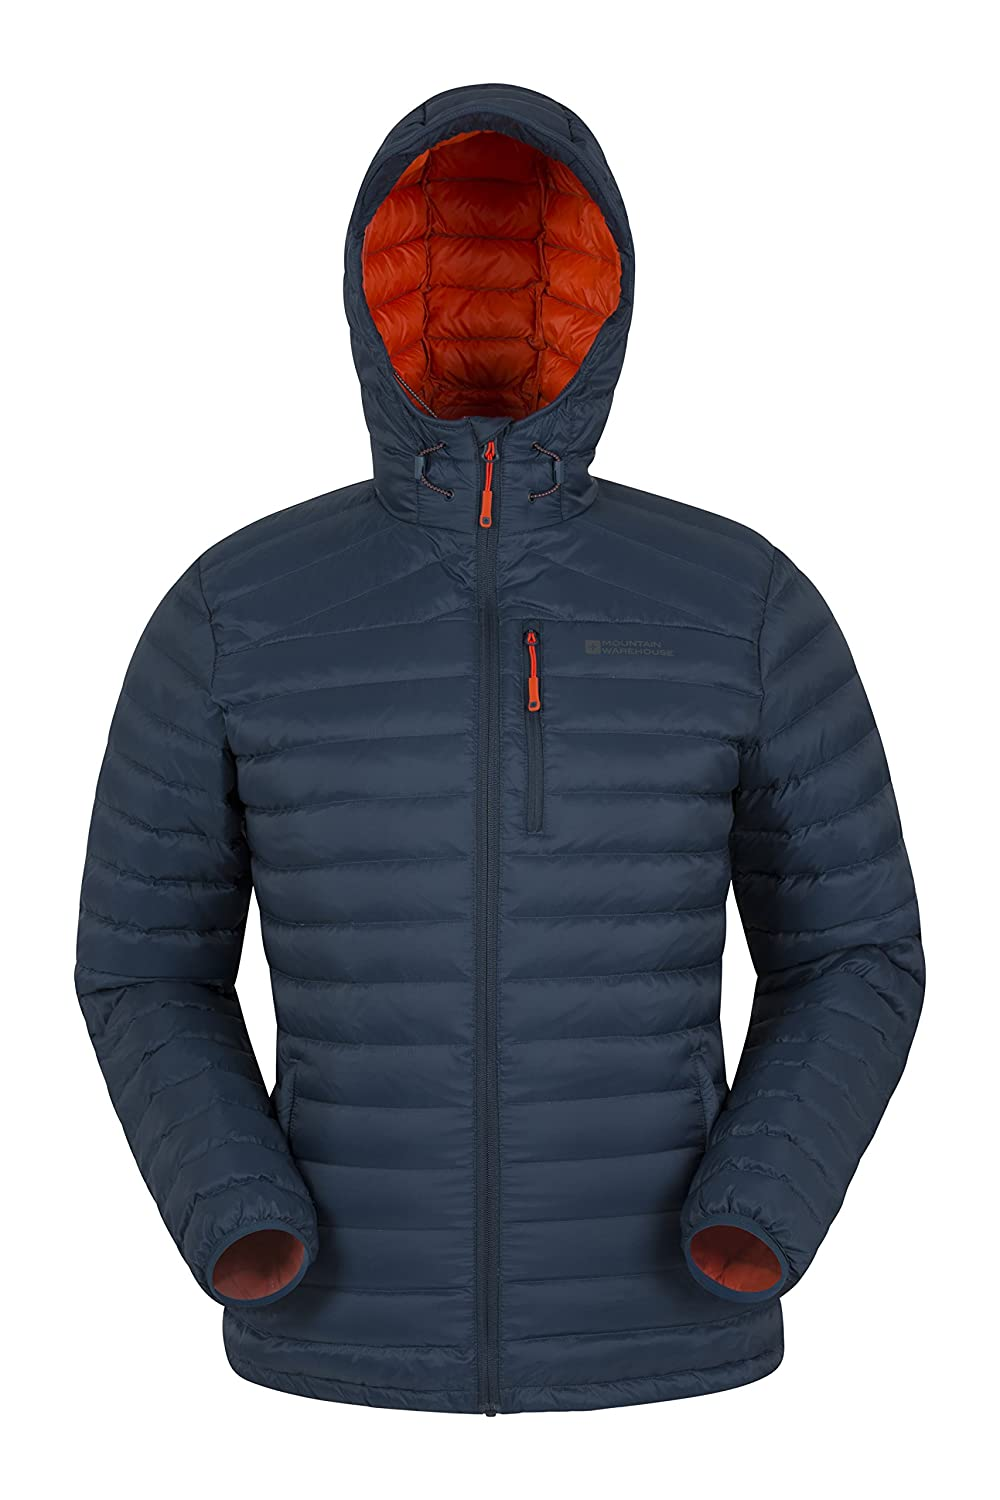 Mountain Warehouse OUTDOOR_RECREATION_PRODUCT メンズ B013SF2OS4 X-Small|ブルー(Petrol Blue) ブルー(Petrol Blue) X-Small